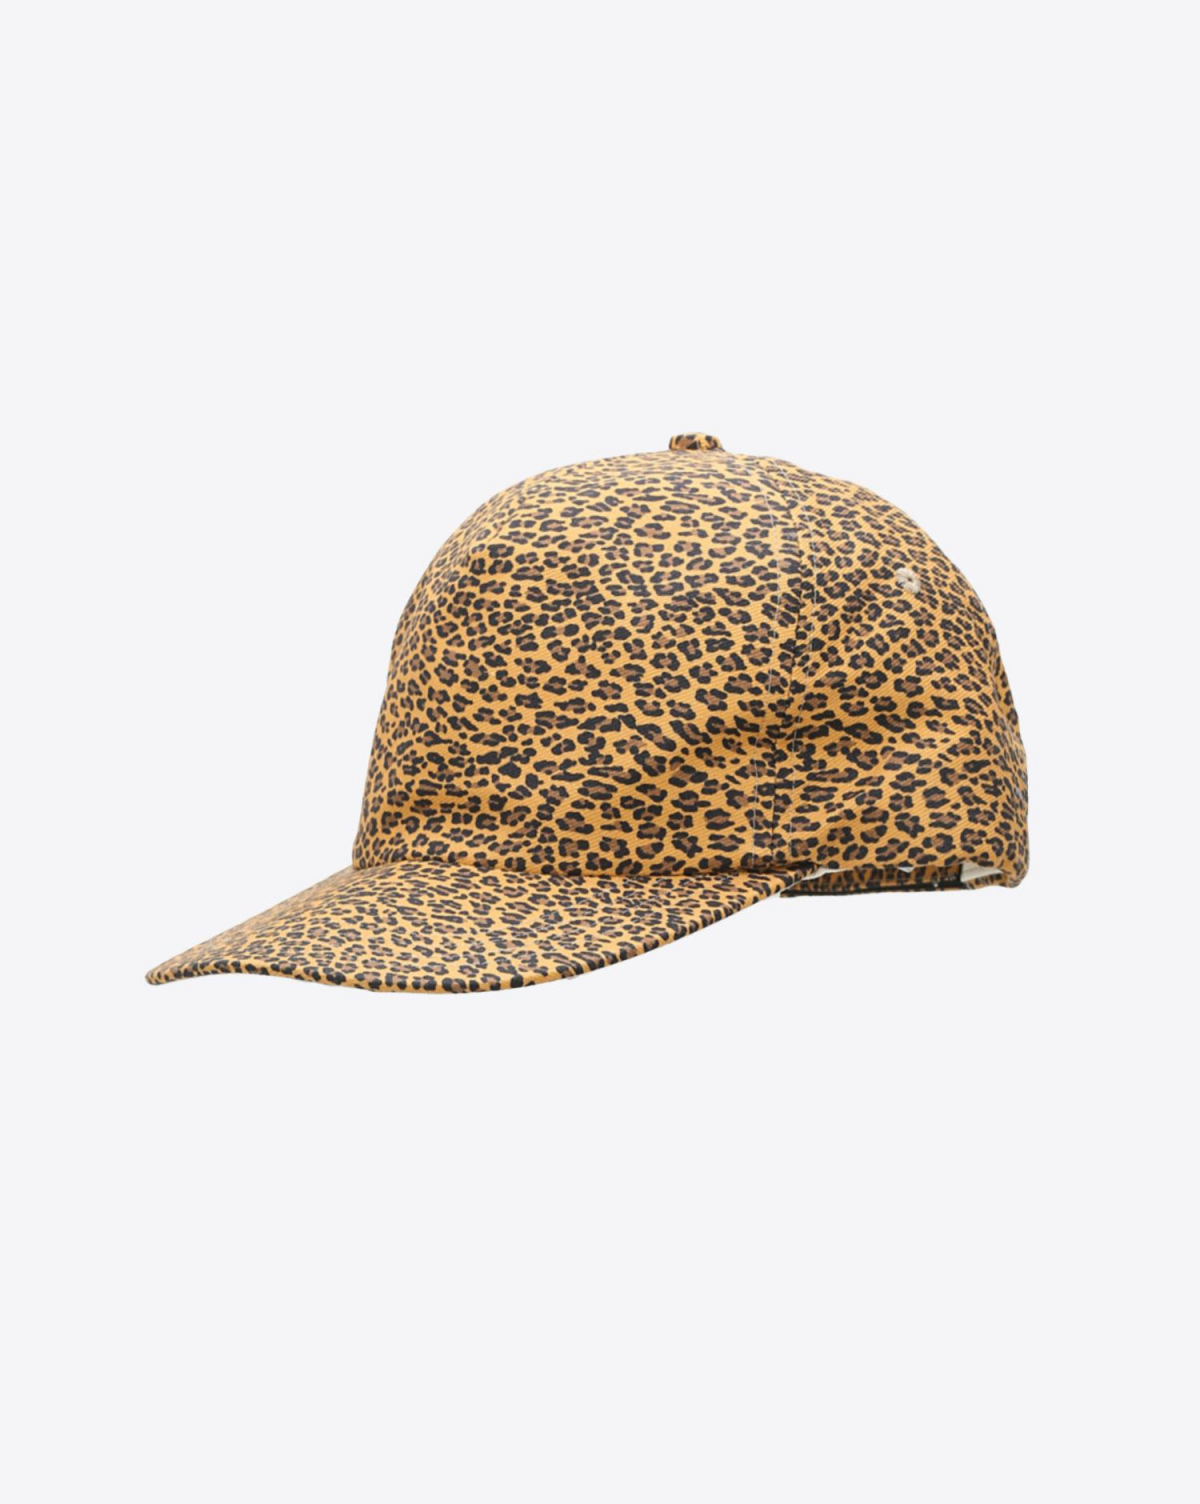 R13 Denim Collection Flat Brim Baseball Cap - Mini Leopard